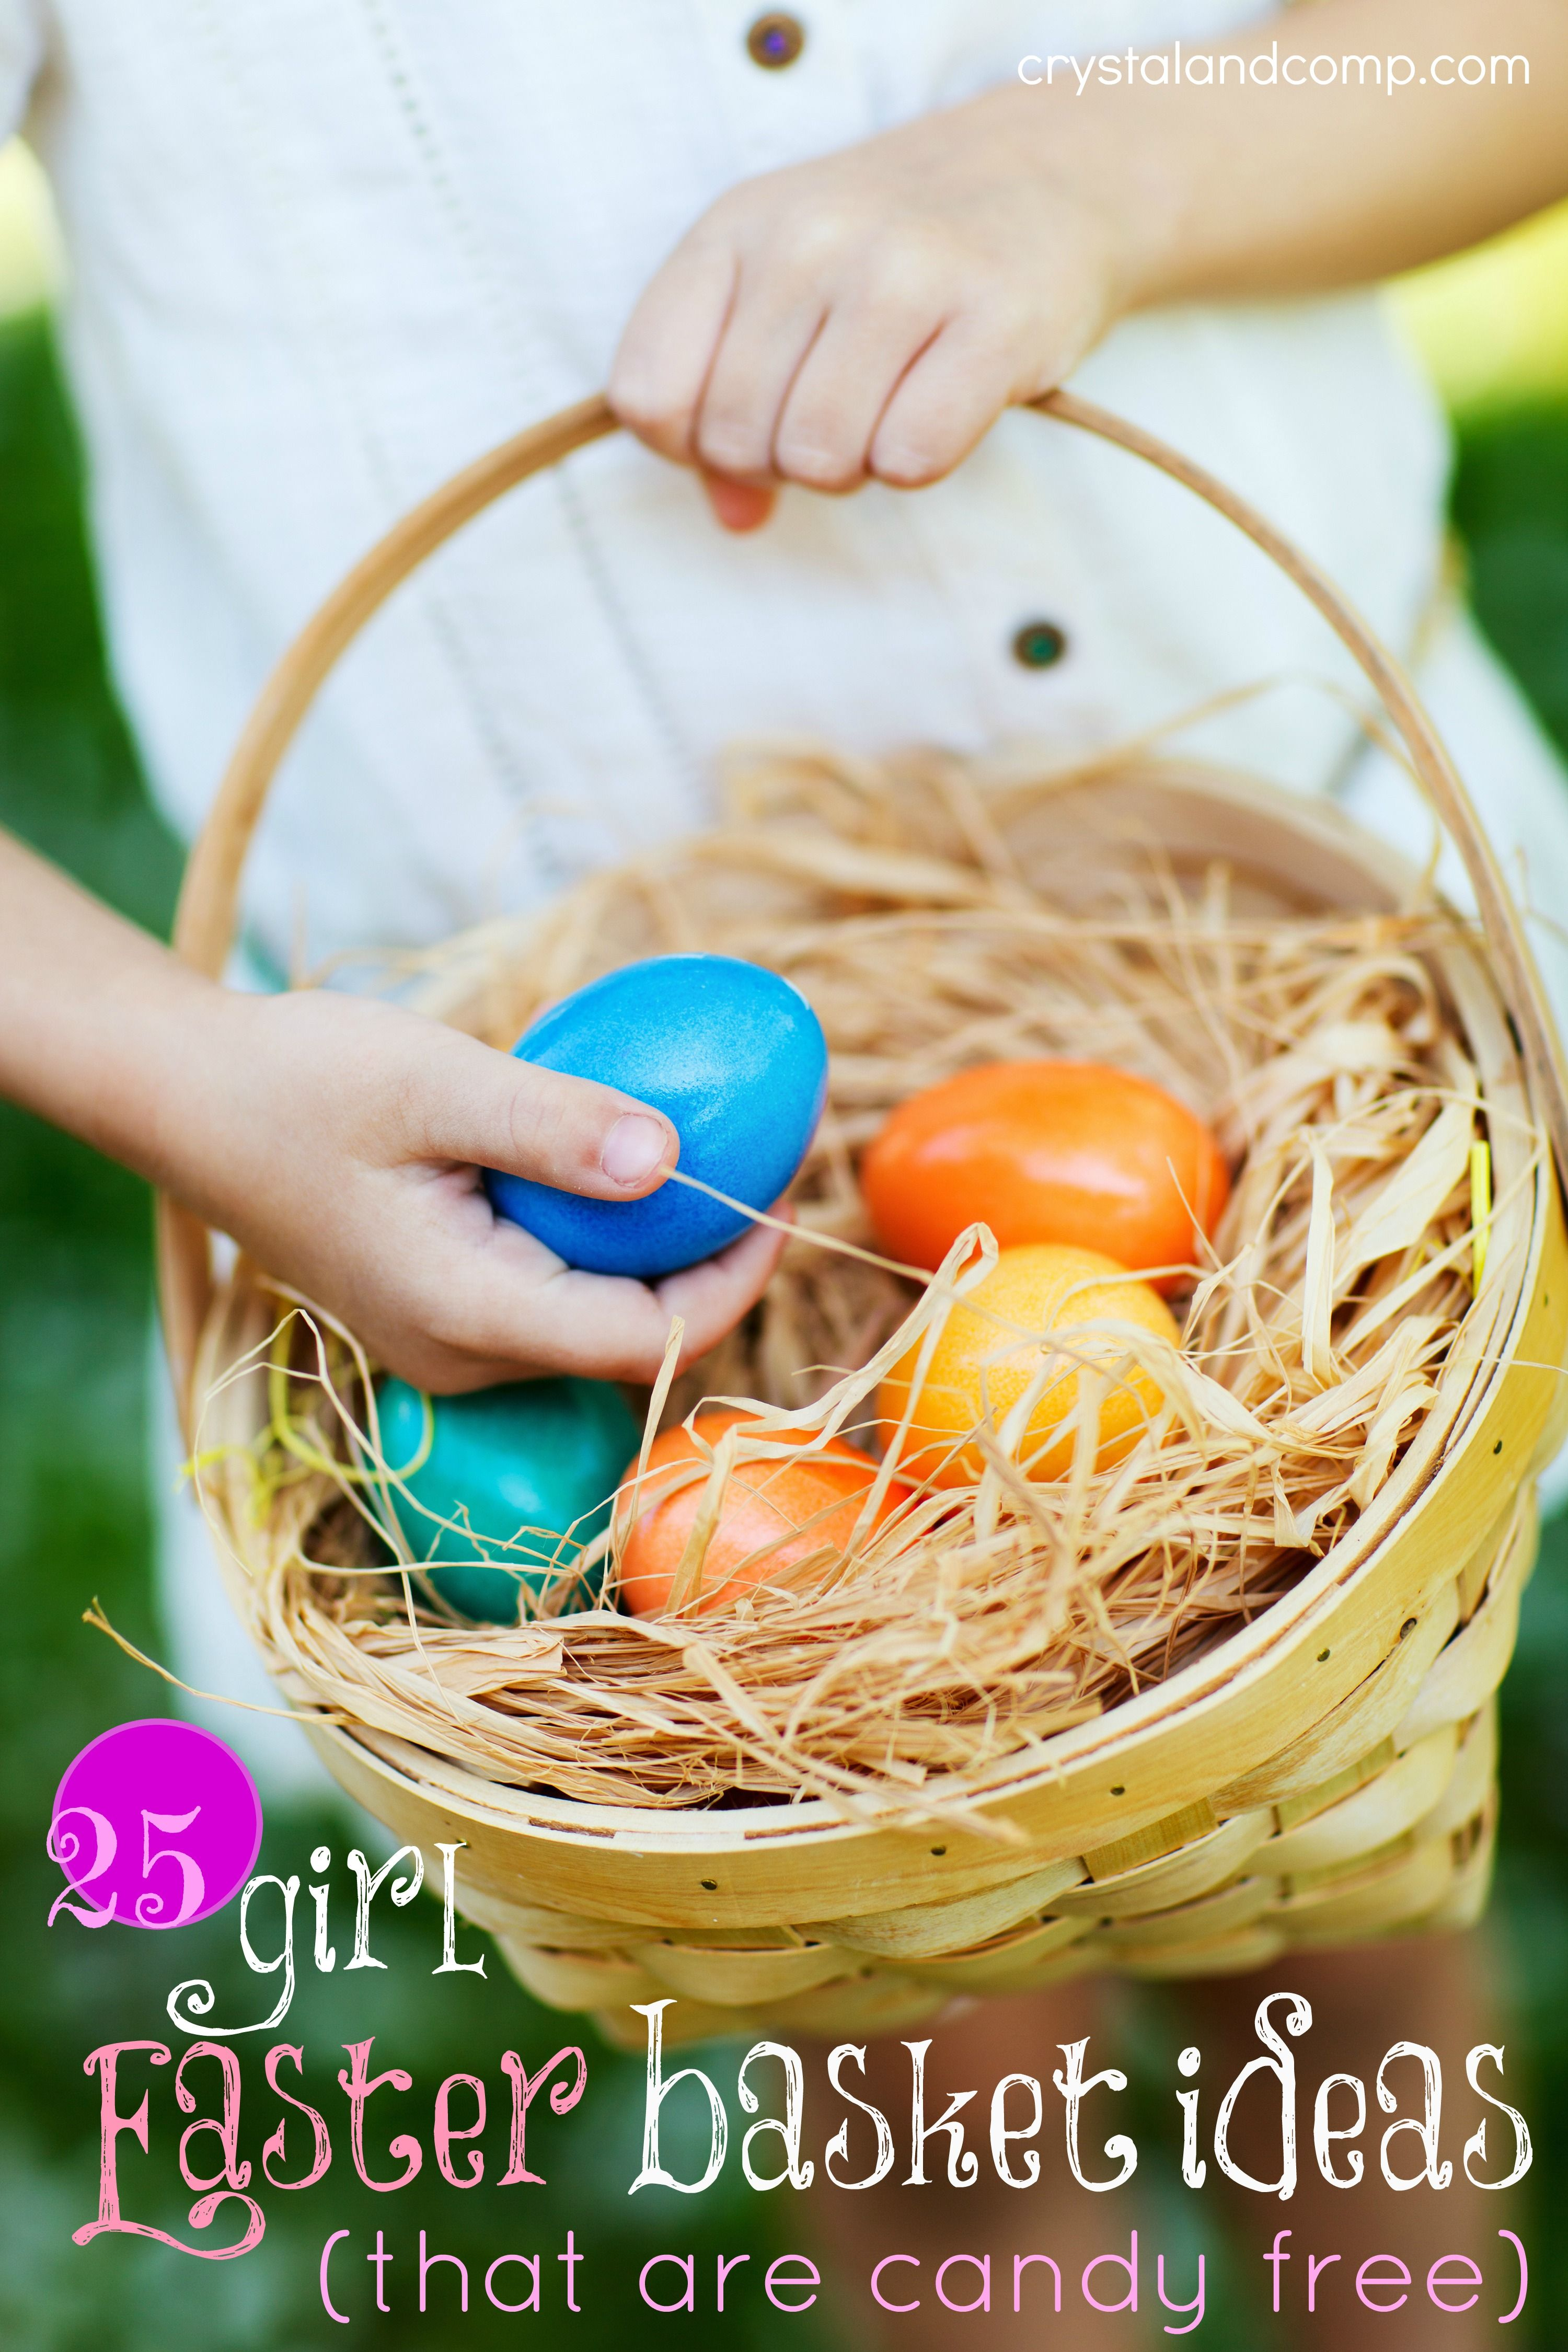 25 easter basket ideas for girls candy free easter baskets girl easter baskets that are candy free negle Images